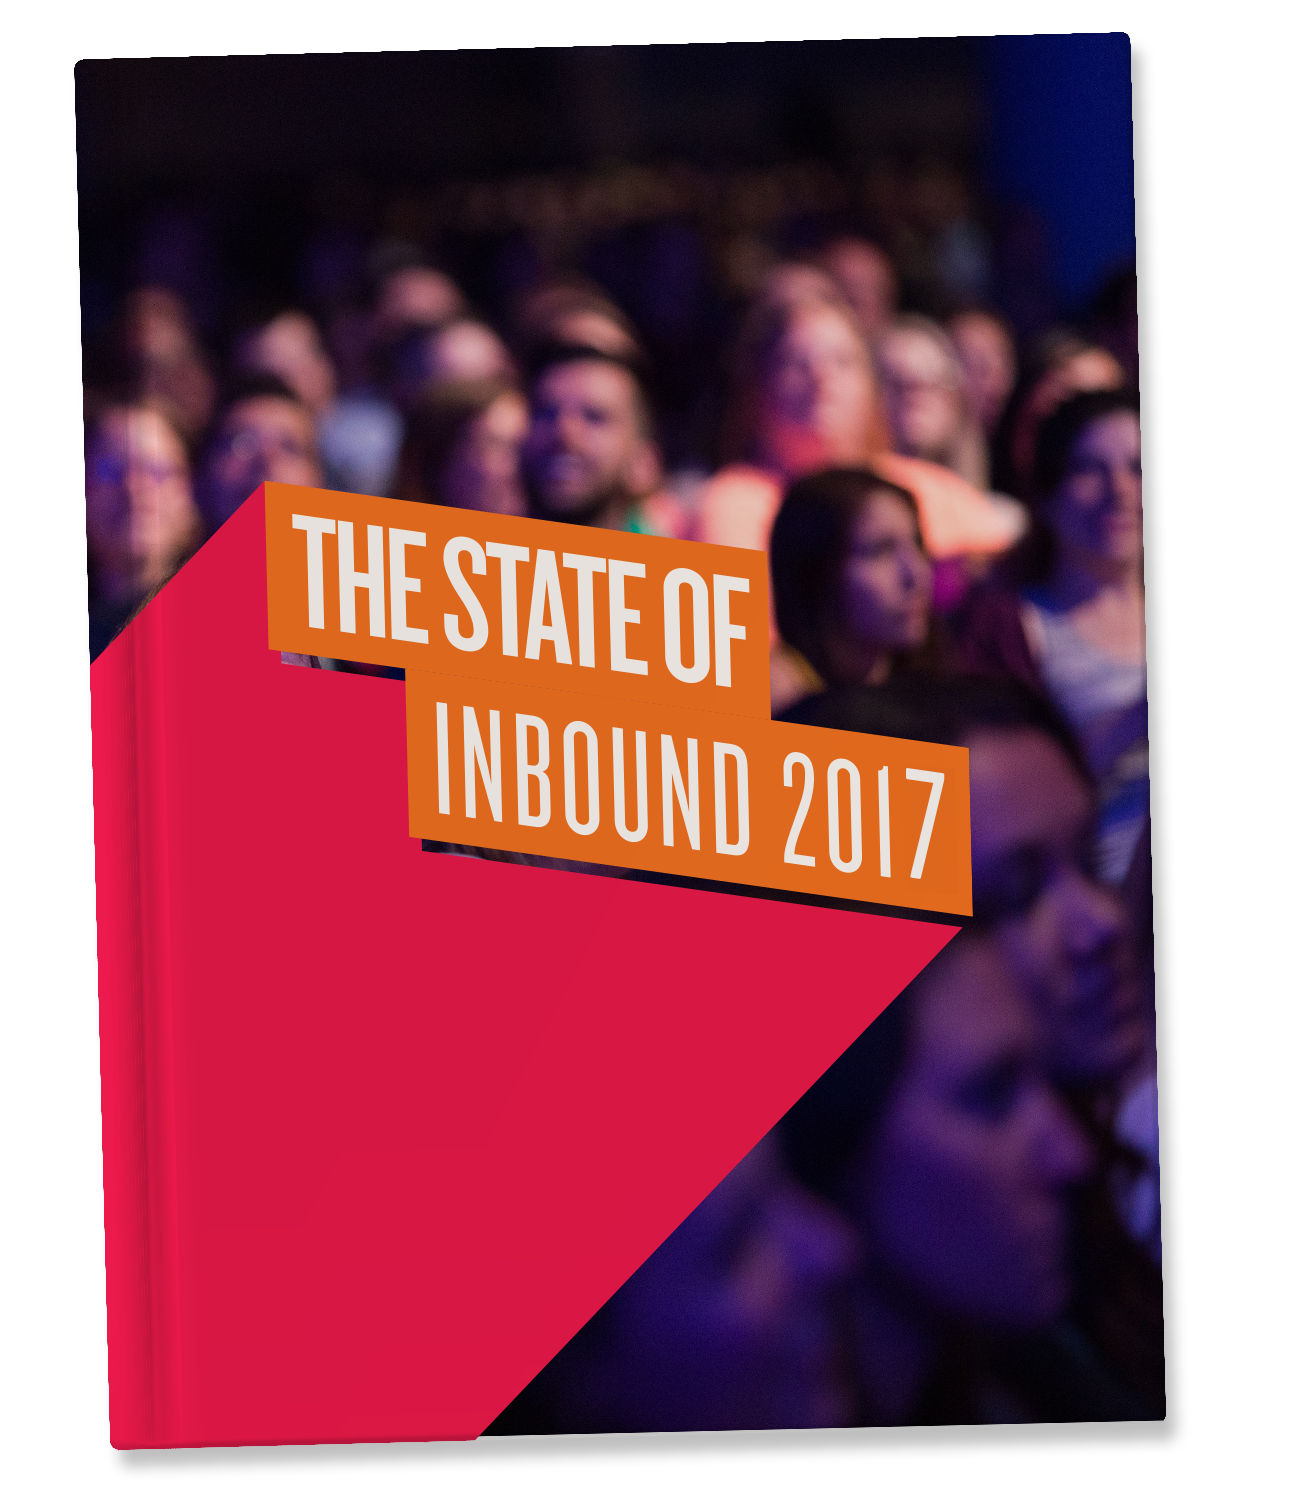 State of Inbound 2017 book cover